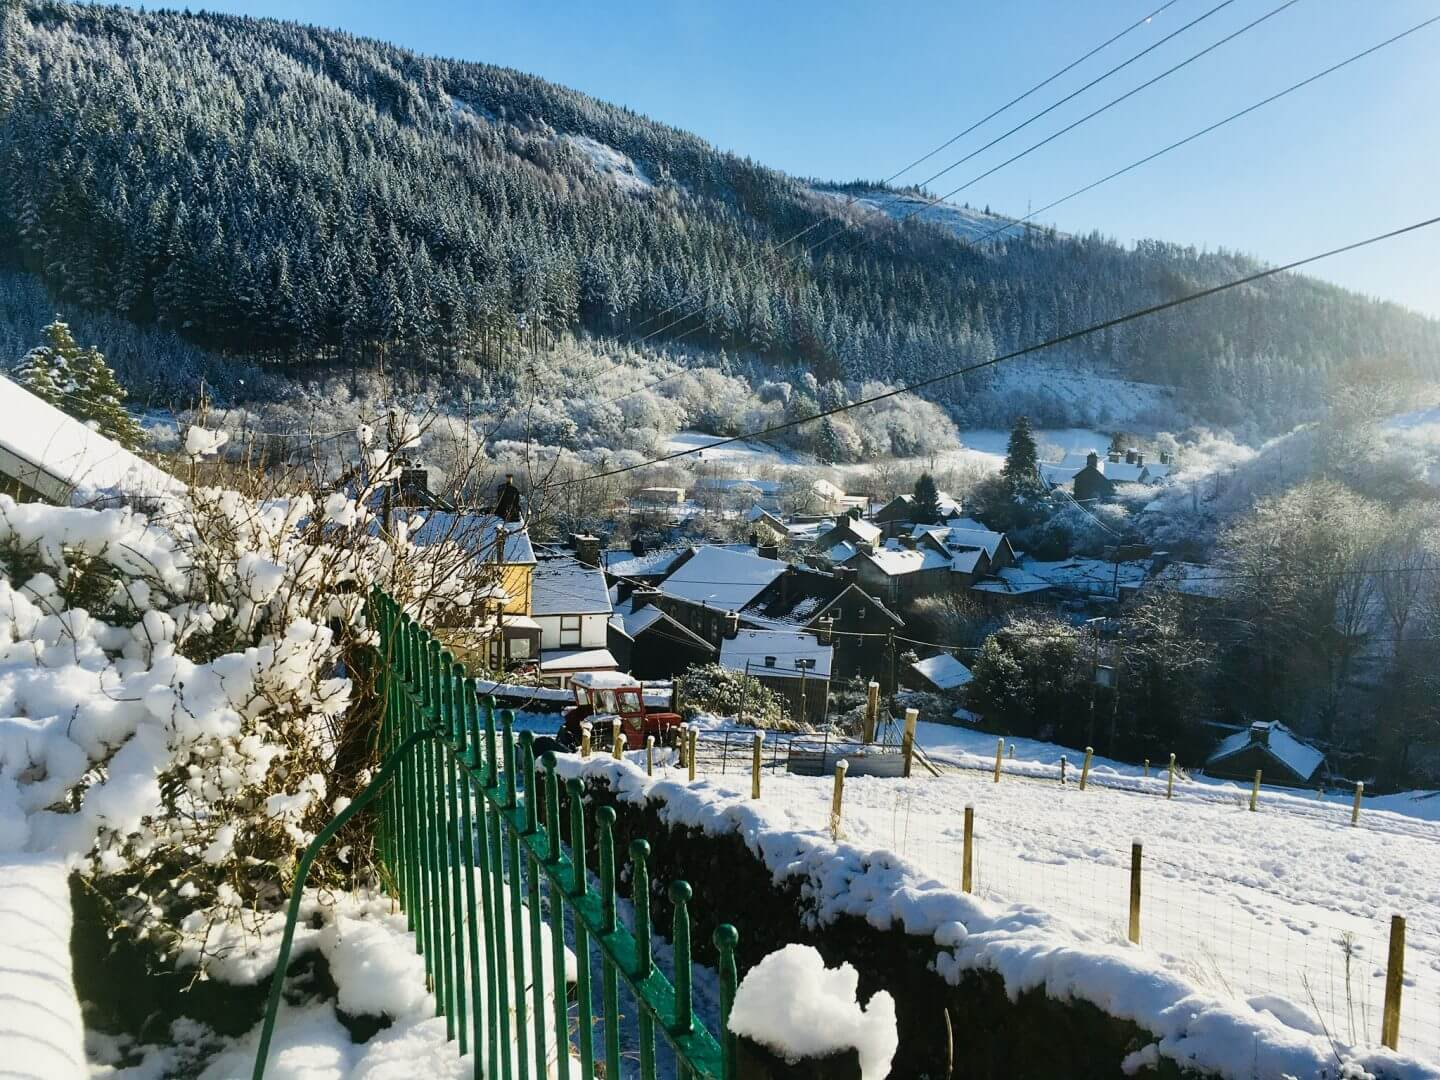 Corris Hostel at Christmas time in Snowdonia